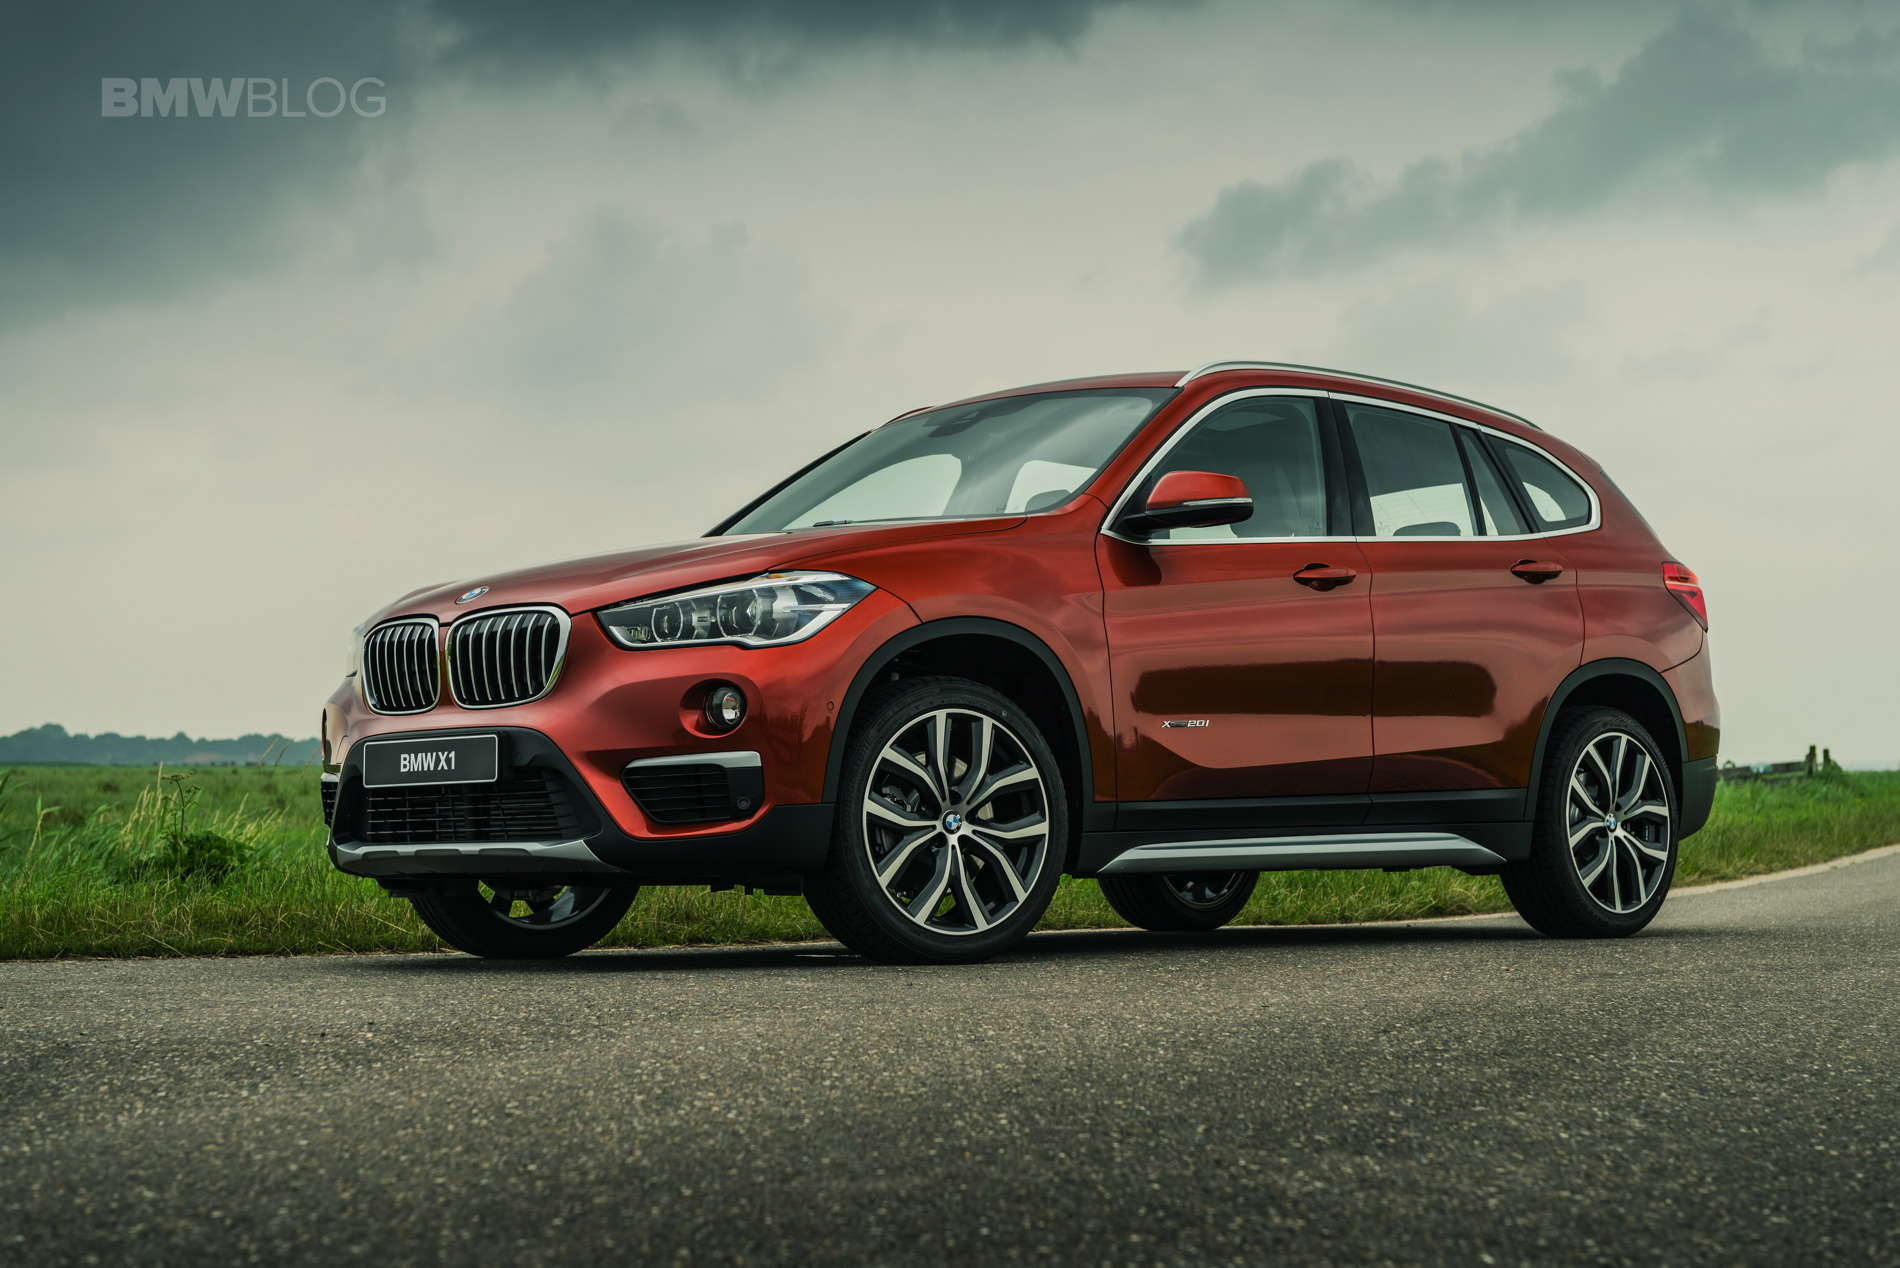 2017 Bmw X1 Orange Edition Special Model In The Netherlands